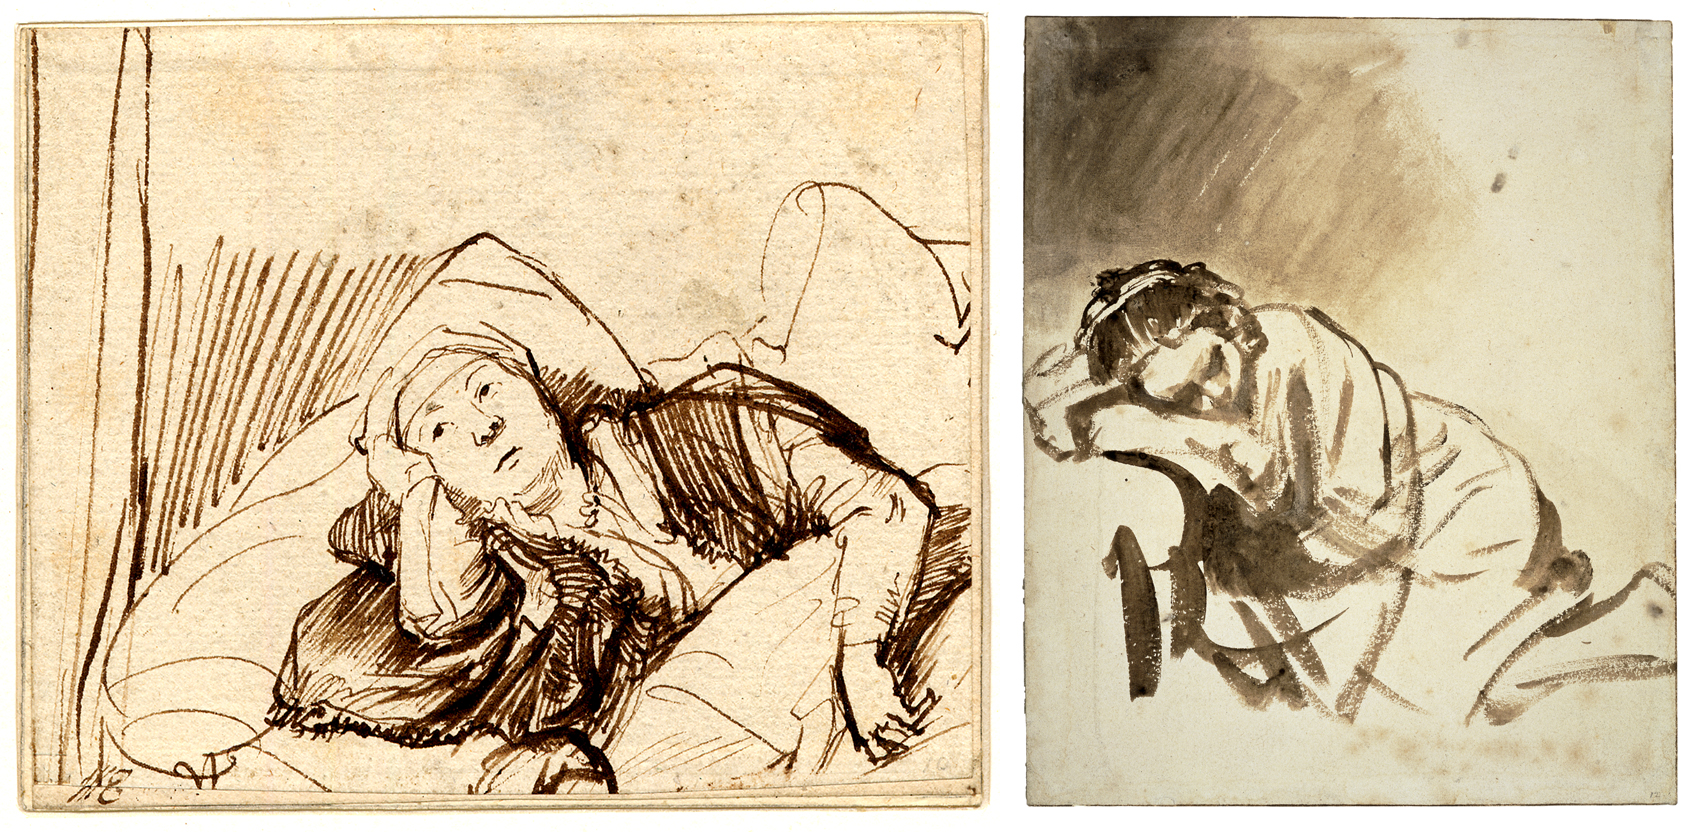 Left: Rembrandt, Woman lying awake in bed. Drawing, pen and brown ink, c. 1635-1640. Right: Rembrandt, Young woman sleeping. Drawing, brush and brown wash, c. 1654.